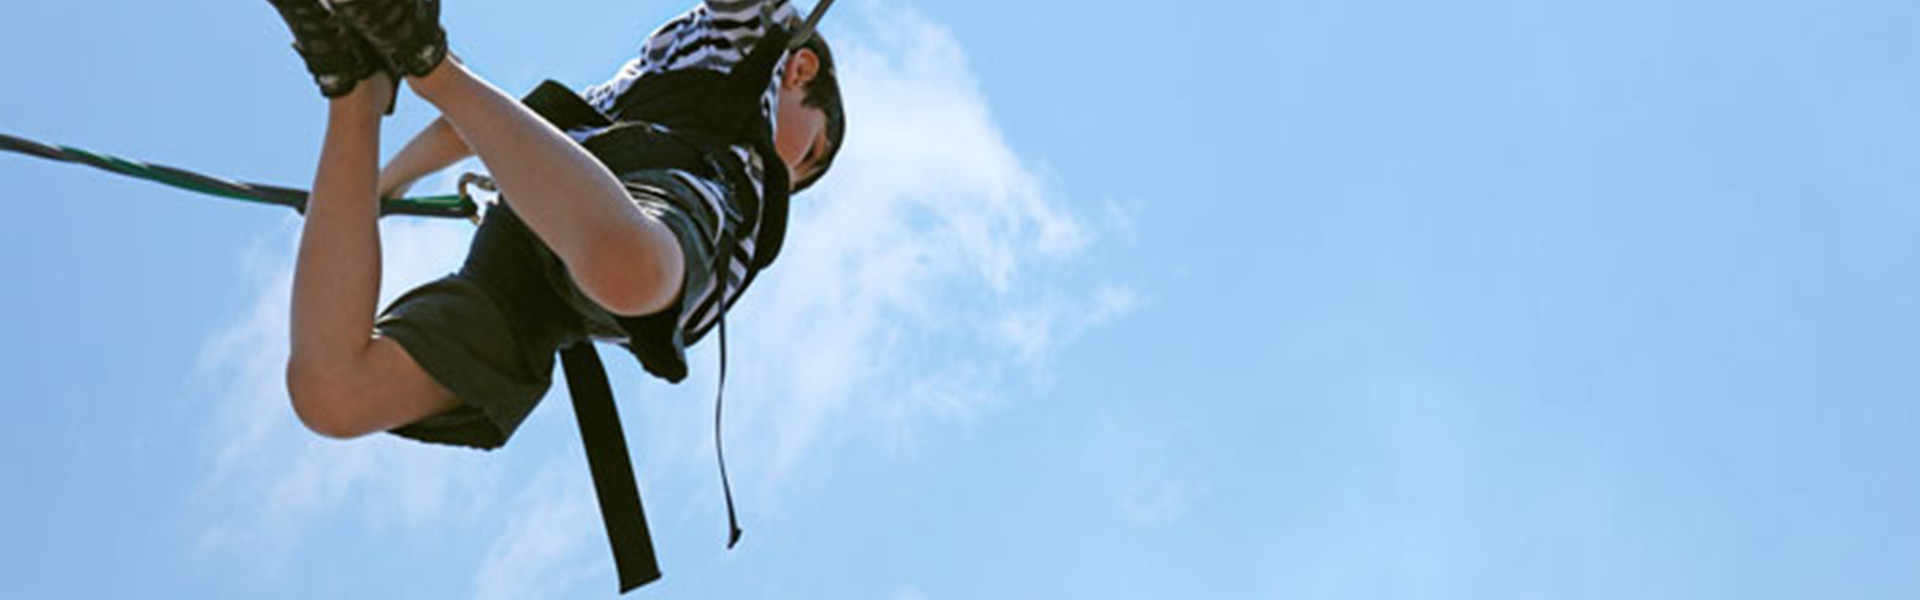 Florida Bungee Jumping near Orlando | Kid Bungee Jumping at Ranch